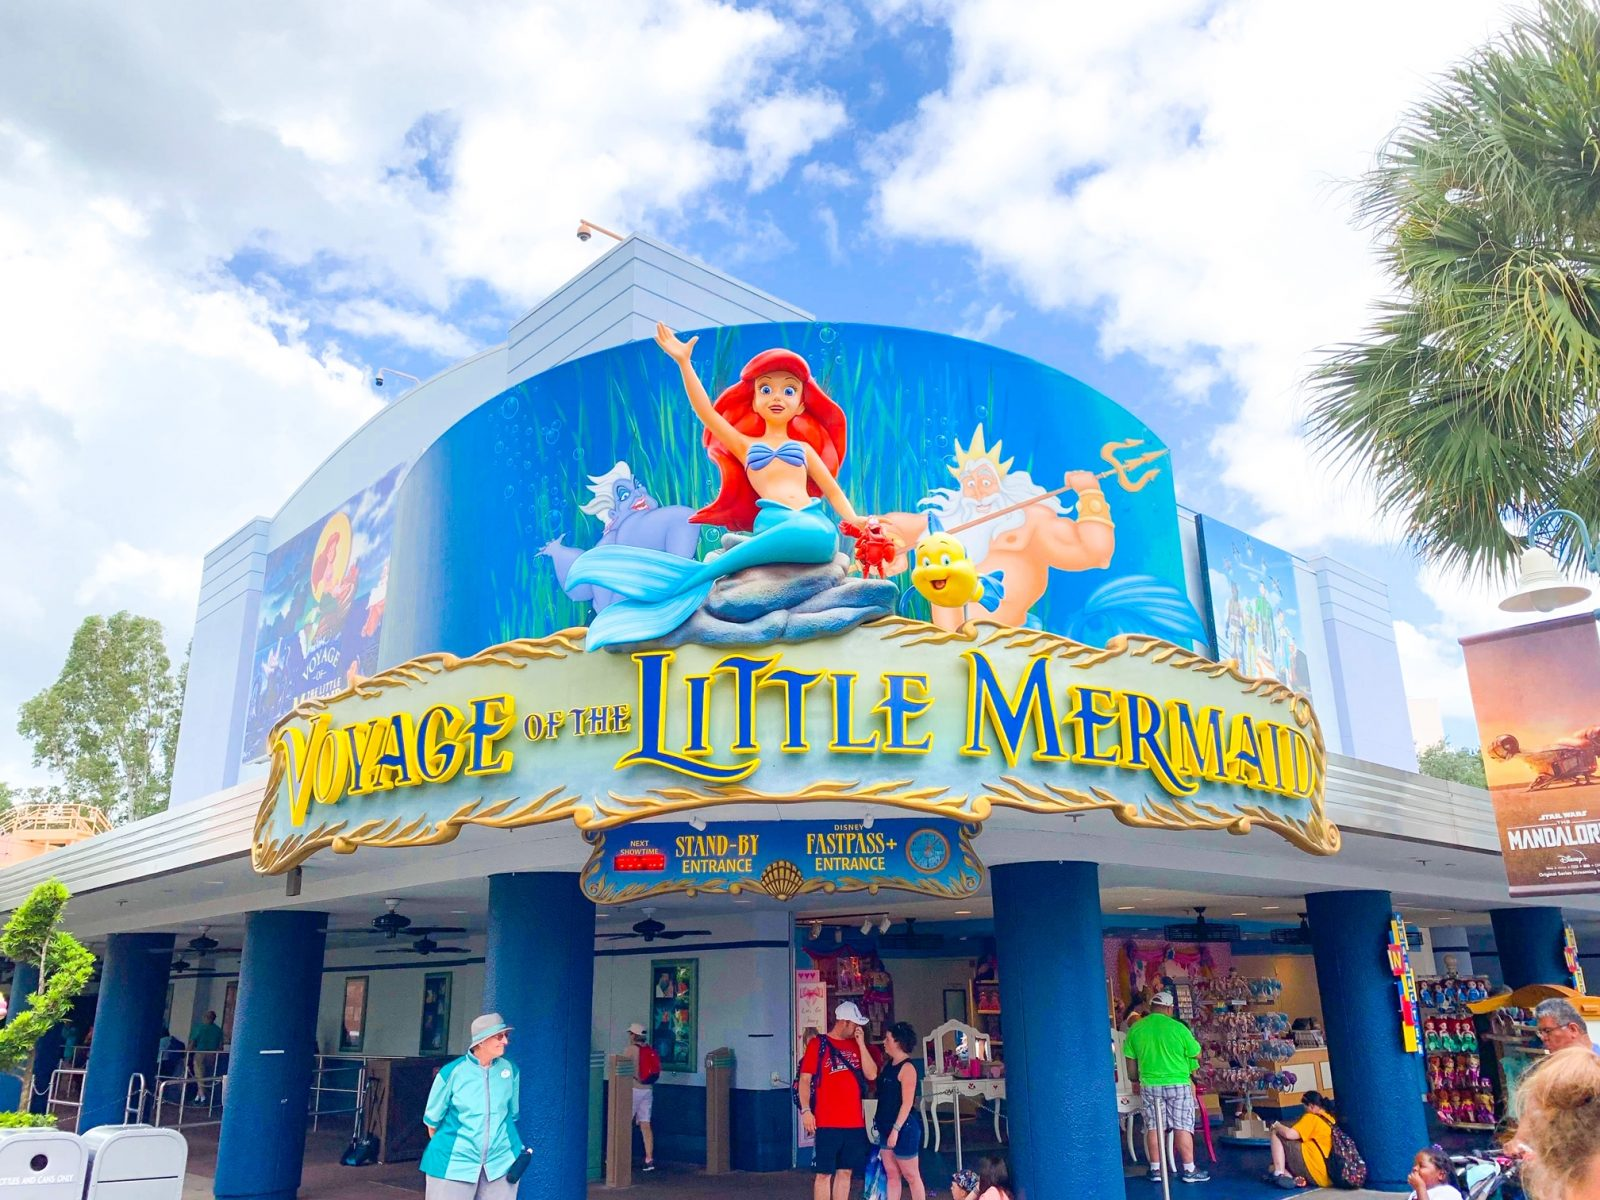 Disney world shows the little mermaid